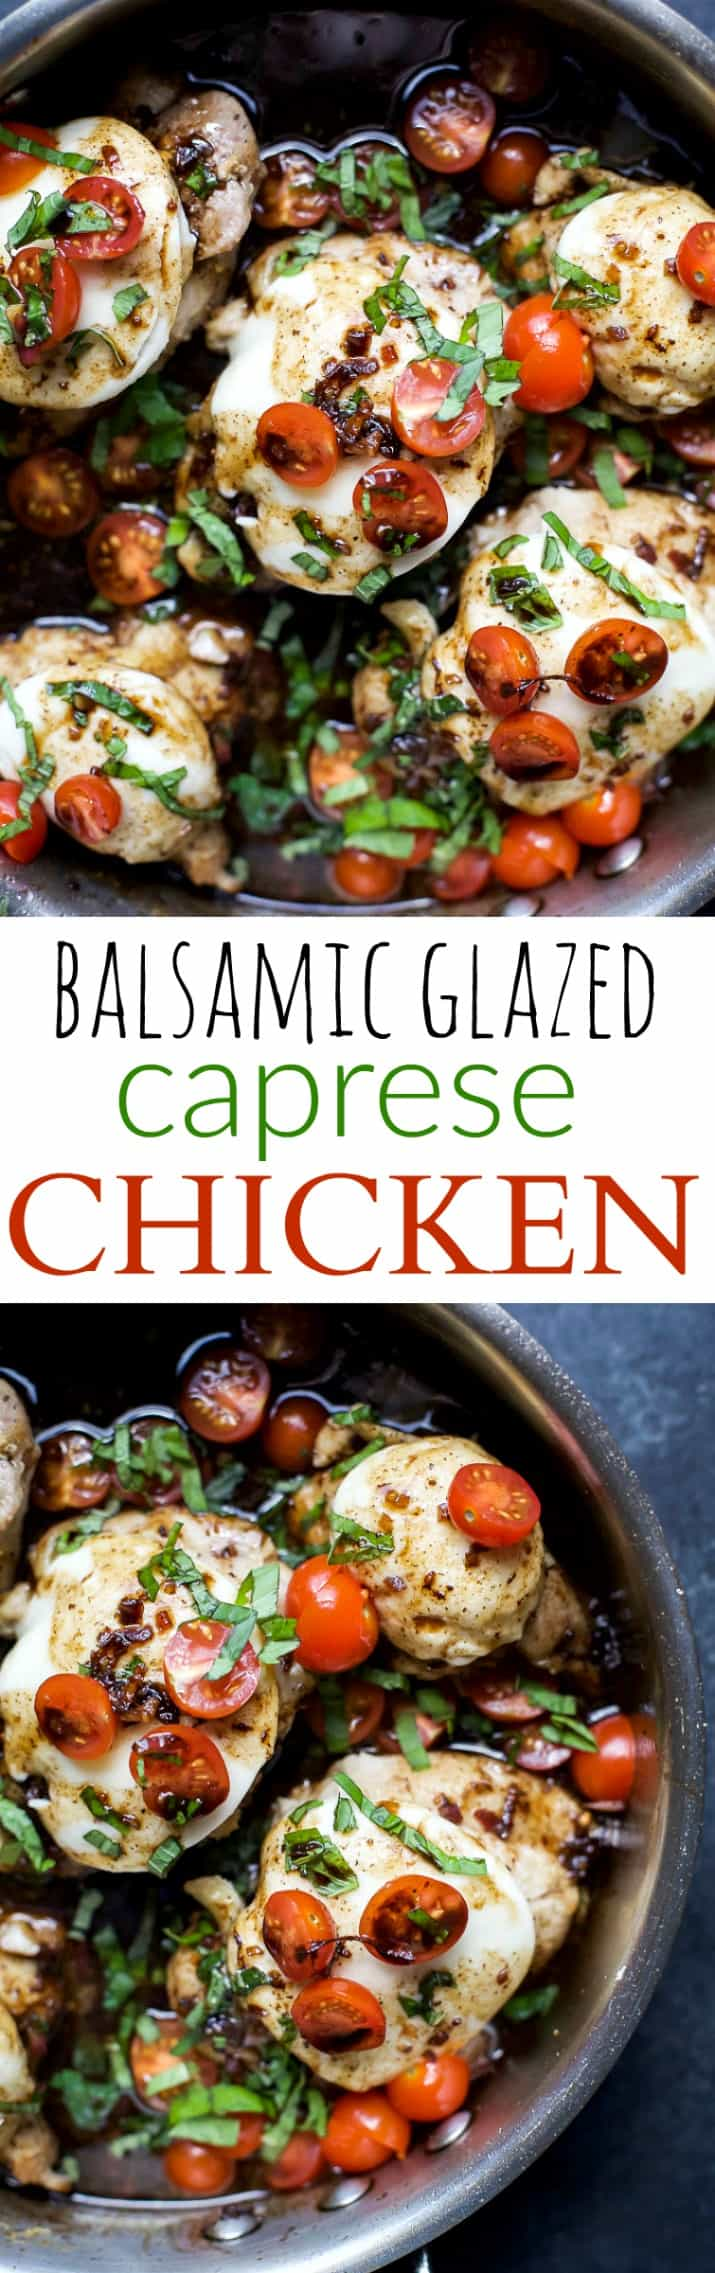 One Pan Balsamic Glazed Caprese Chicken - an easy recipe done in less than 40 minutes. Tender juicy Chicken cooked in balsamic glaze, I guarantee you'll love it! | gluten free recipes